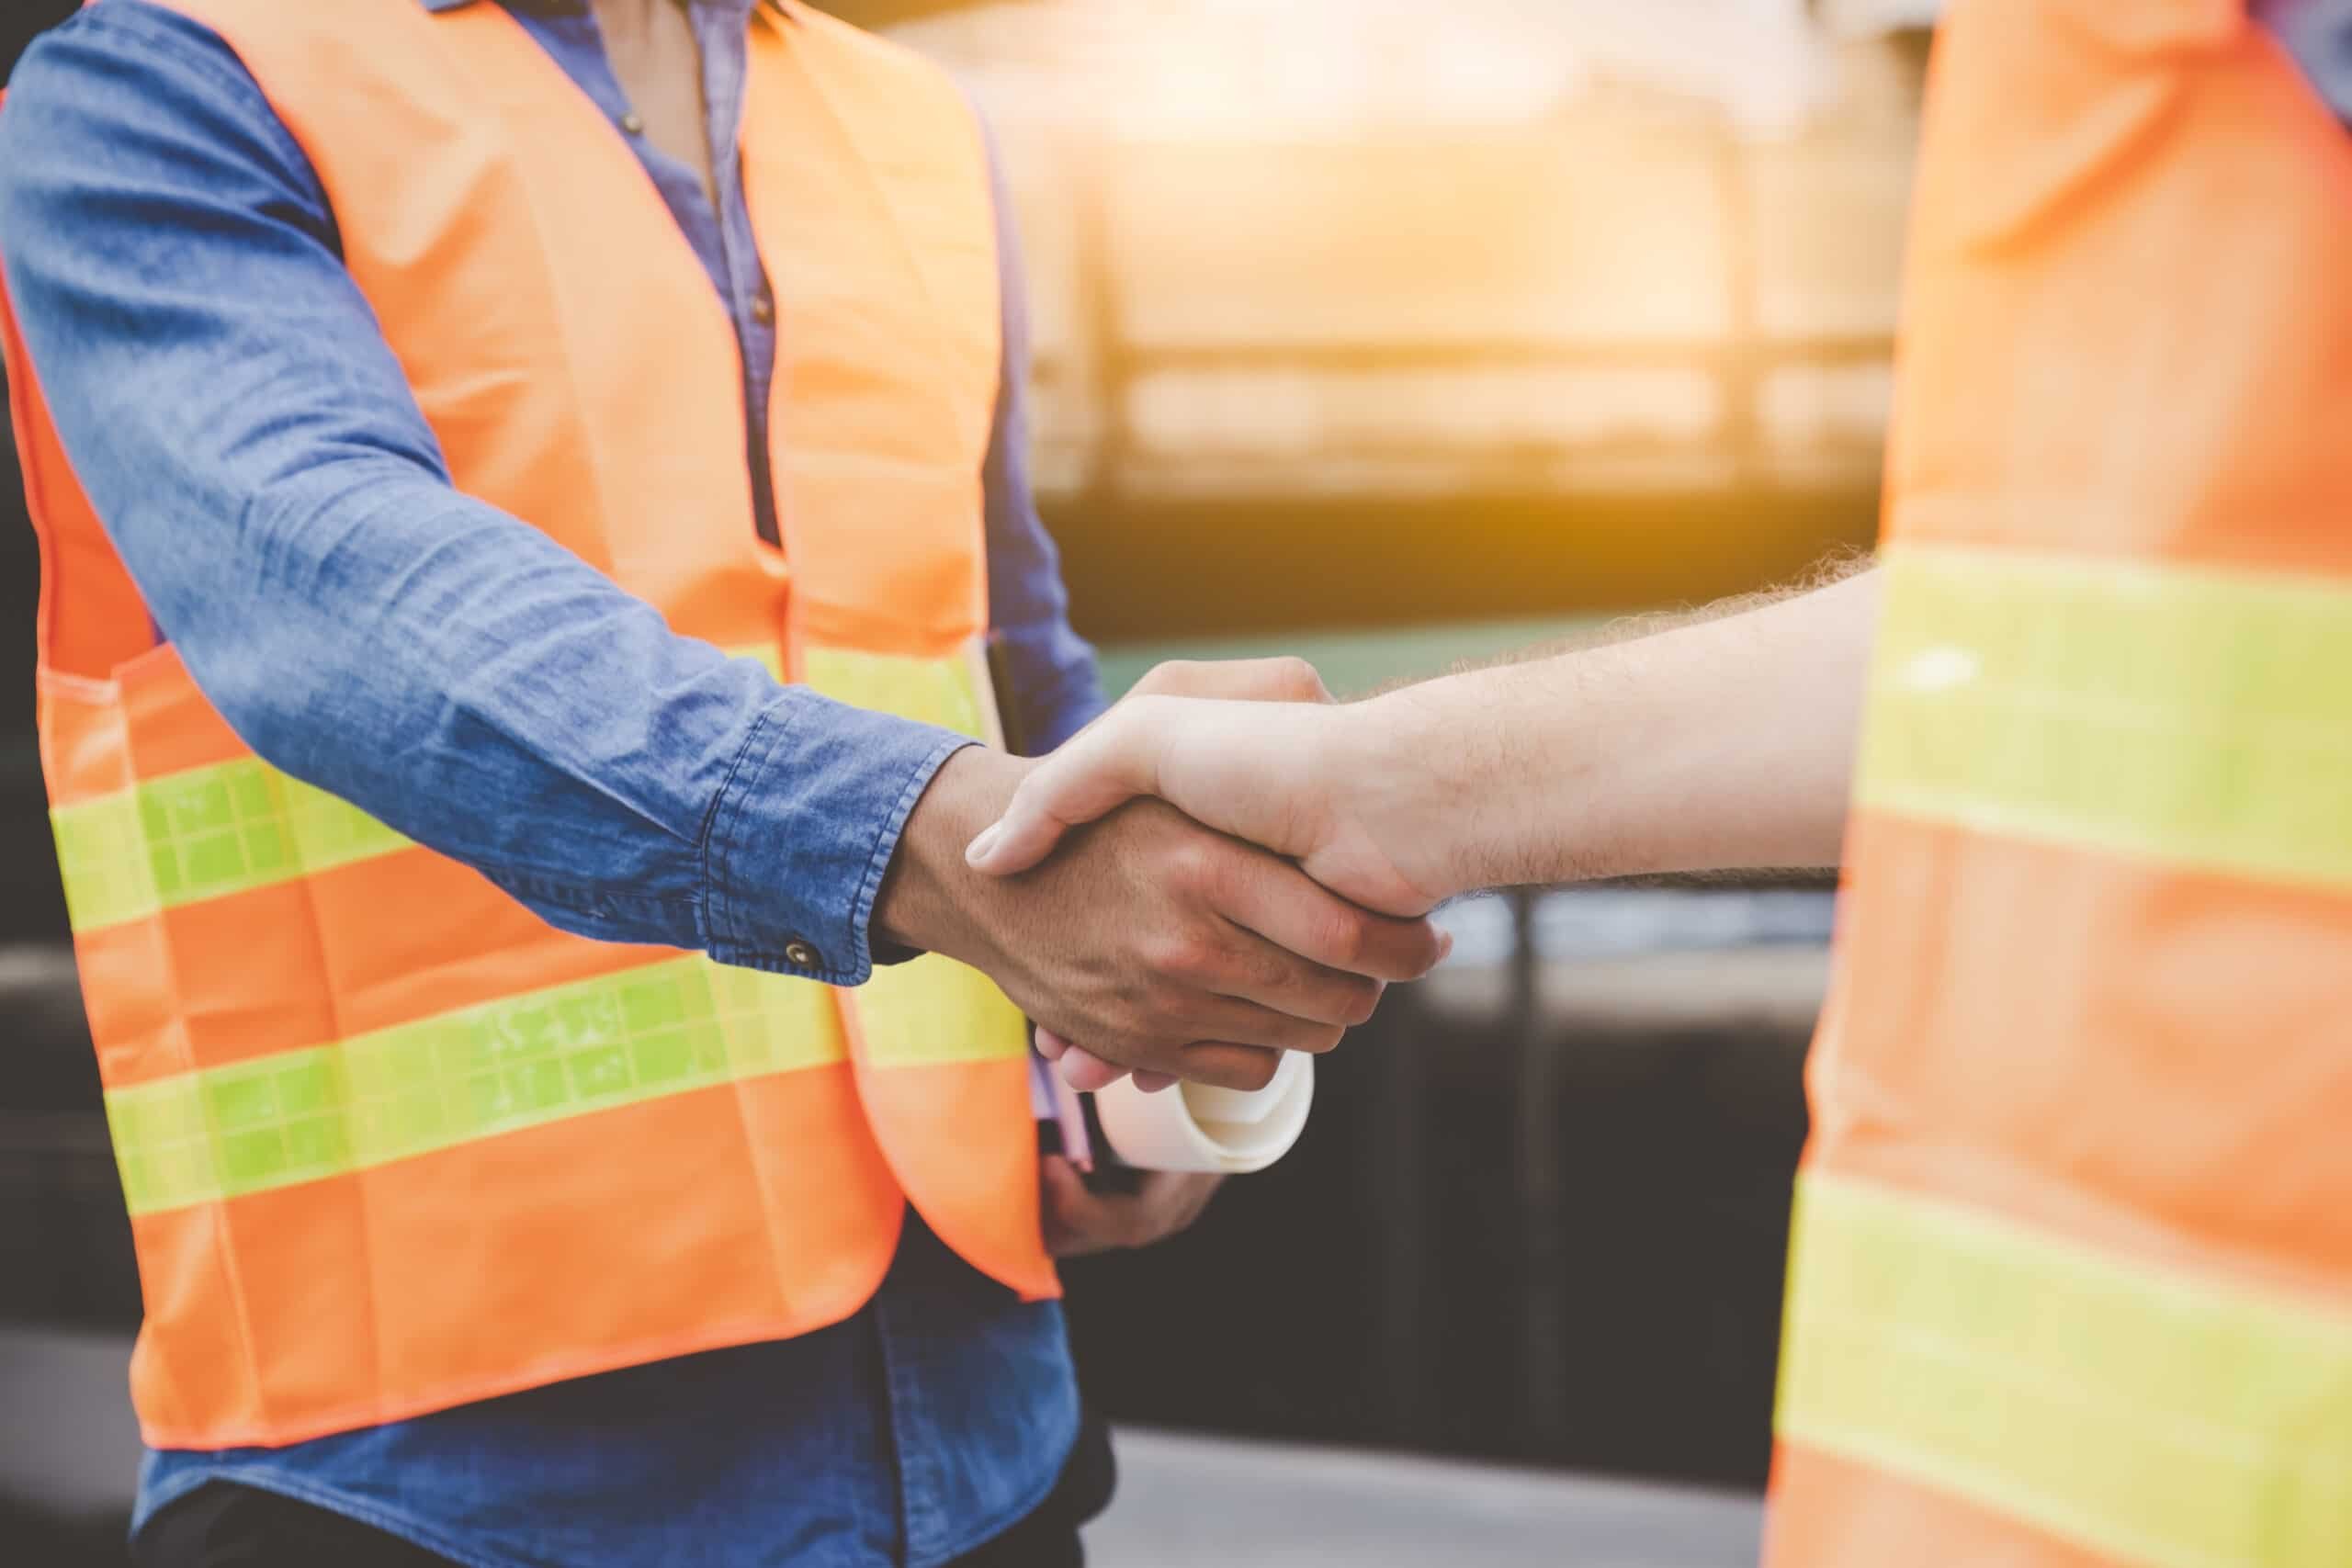 Engineer men making handshake in construction site. Employee or worker shake hands to employer man for greeting, dealing, teamwork, collaboration some project or business. They are good team